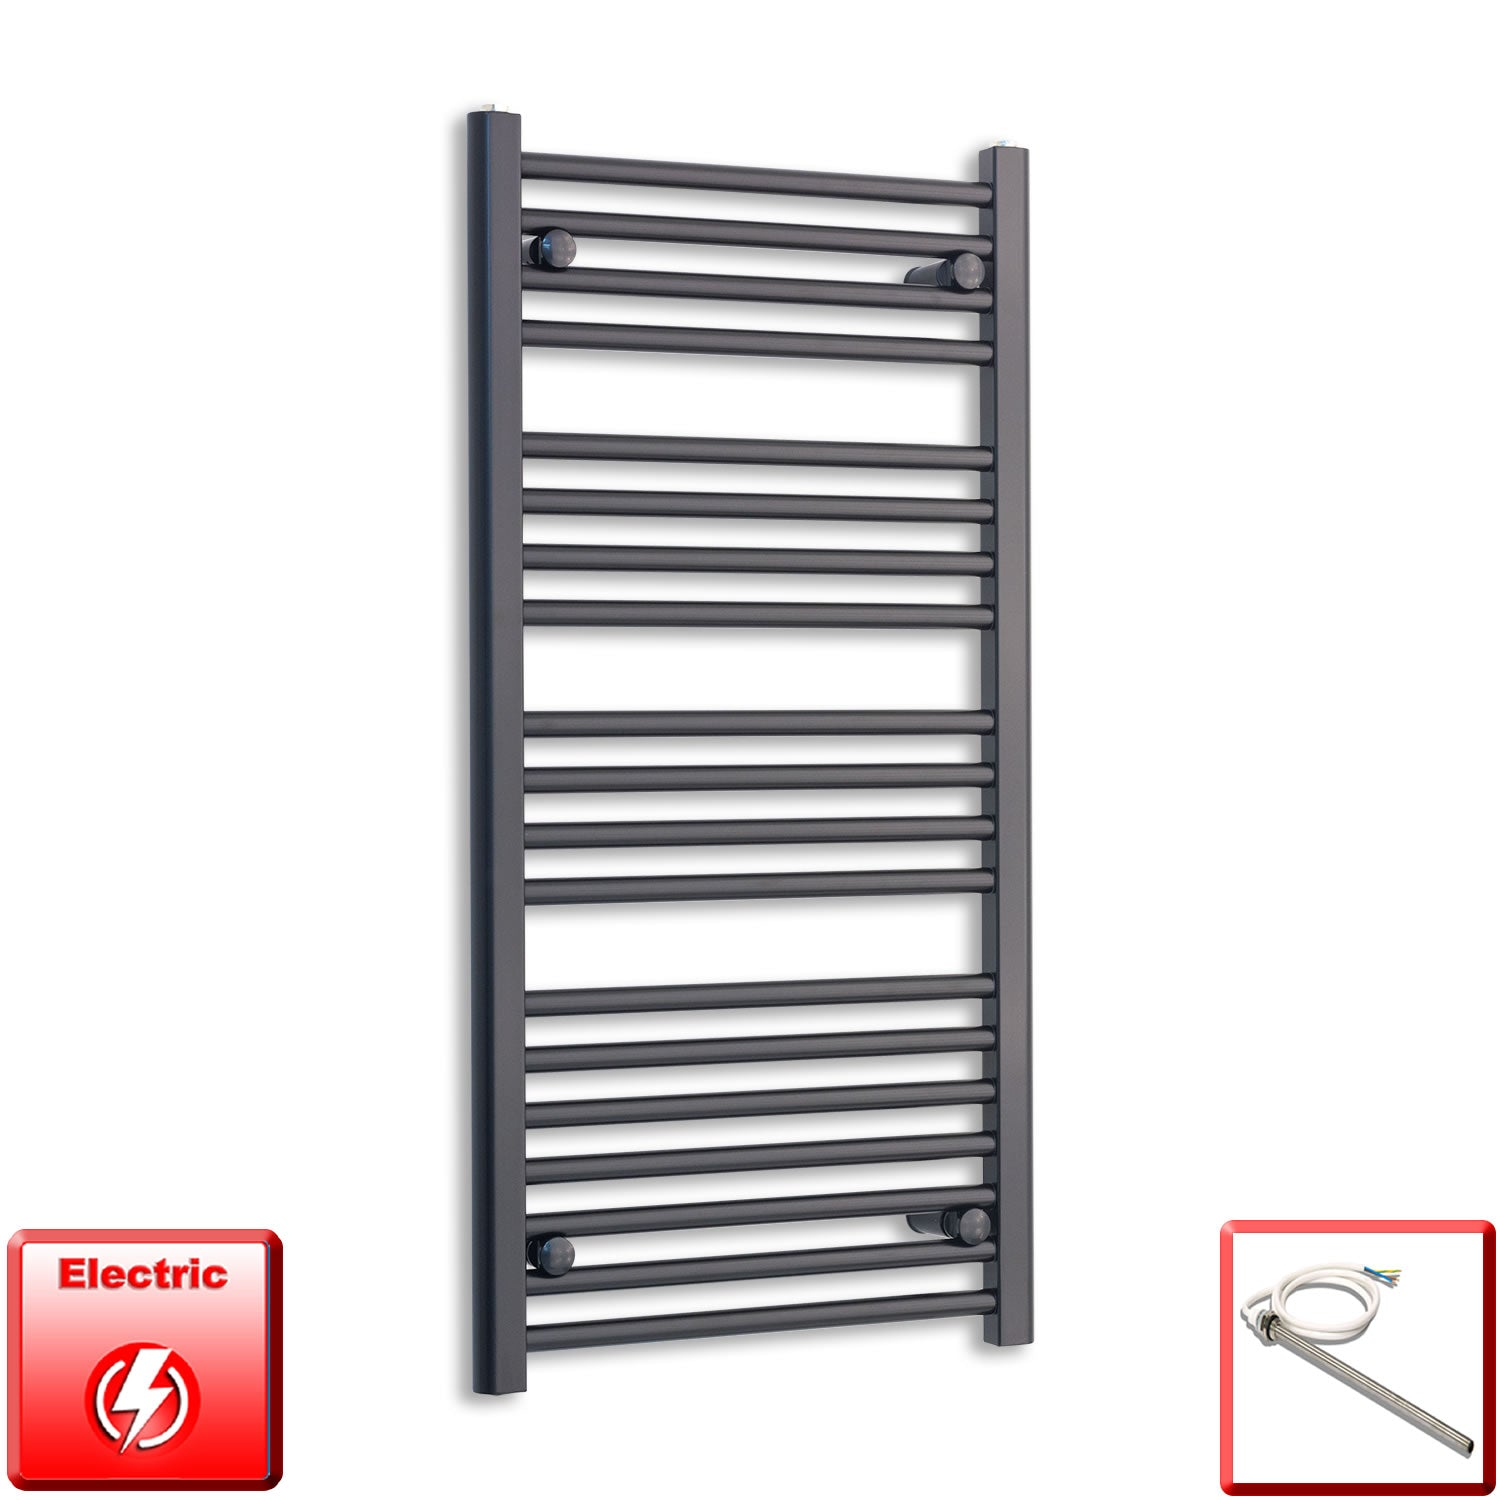 600mm Wide 1000mm High Flat Black Pre-Filled Electric Heated Towel Rail Radiator HTR,Single Heat Element